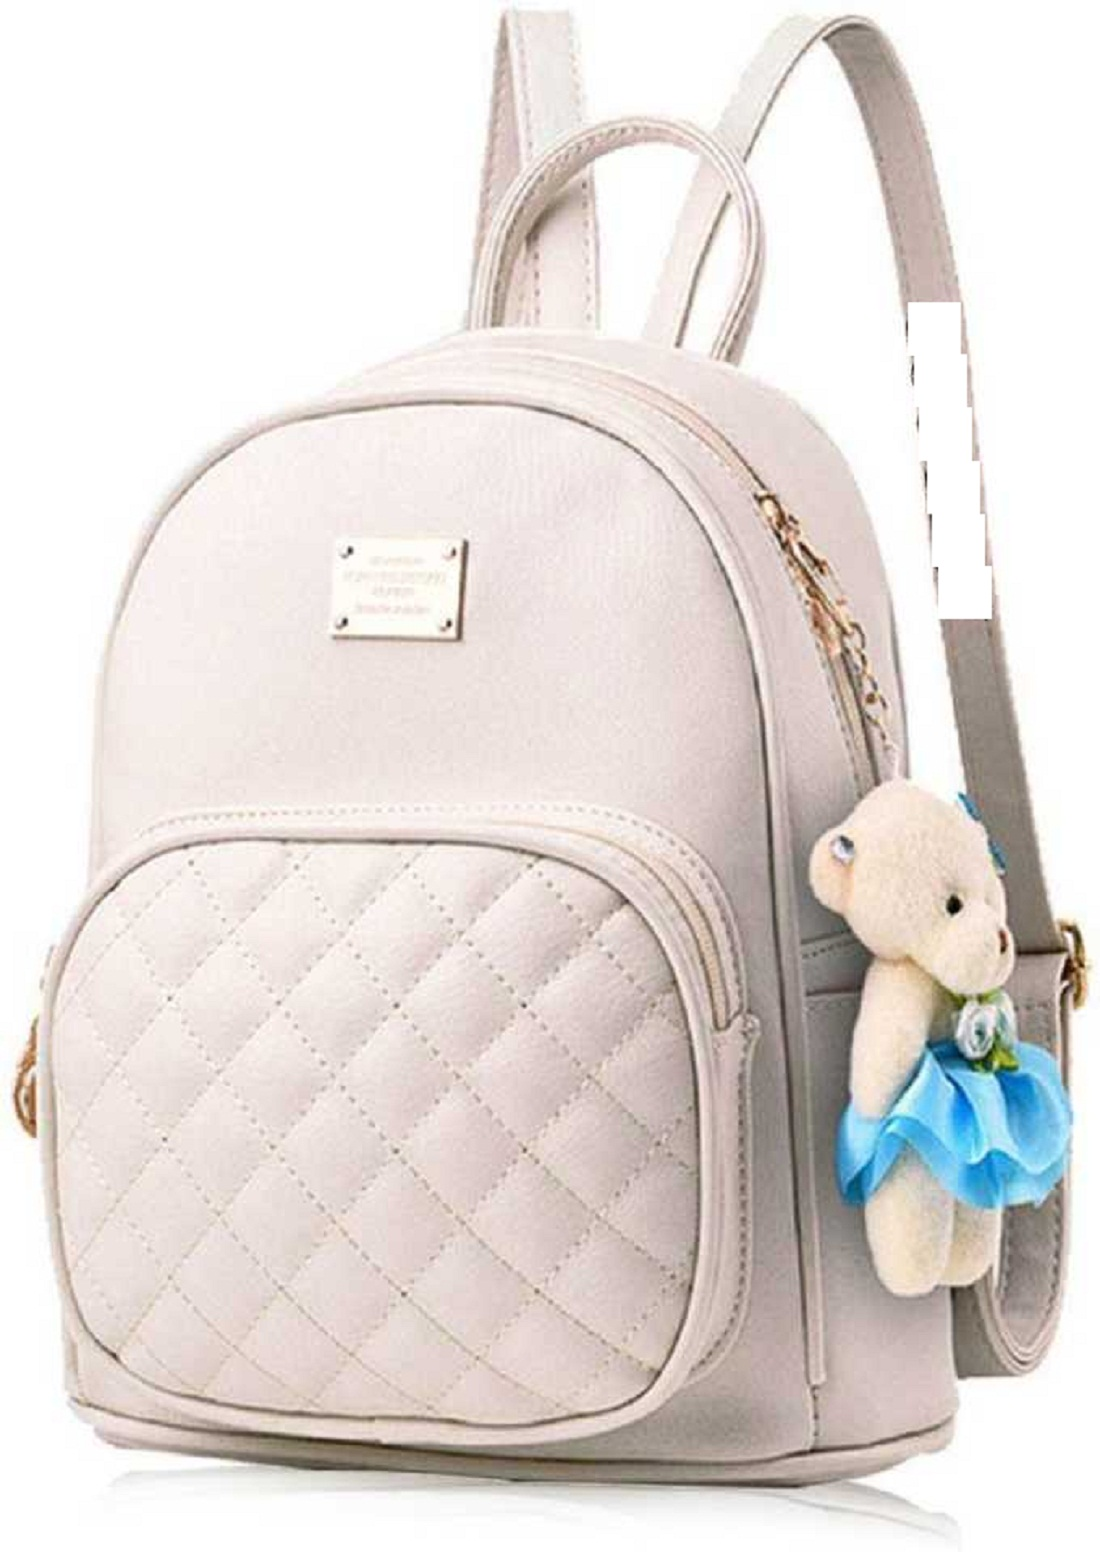 Latest Trendy Teddy Style Women Girls Pu Leather Backpack School Bag Student Backpack Travel Bag Tution Bag Collage Bag